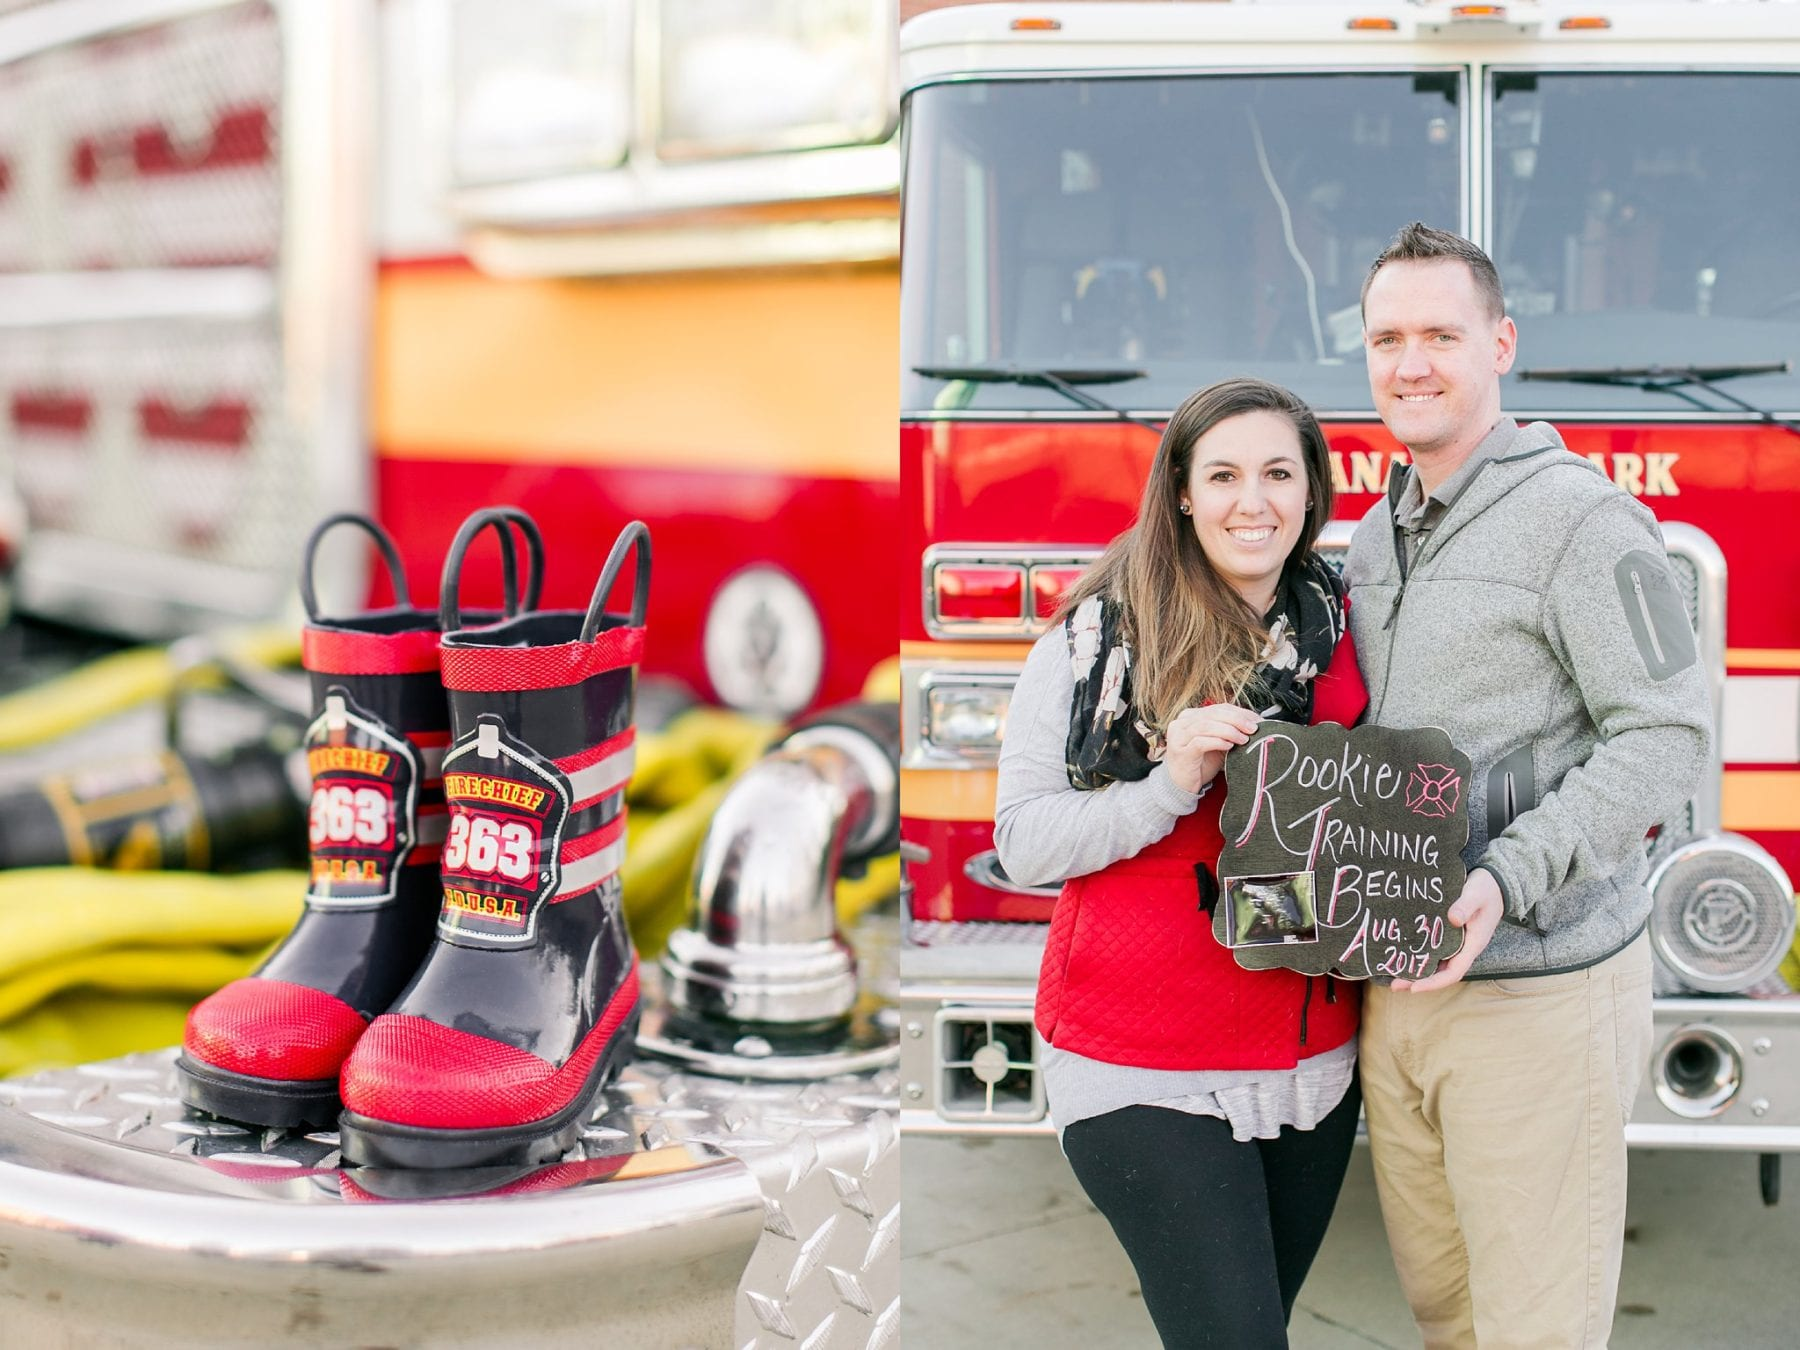 Firefighter Baby Announcement Virginia Photographer Megan Kelsey Photography Jeromy & Becky-6.jpg